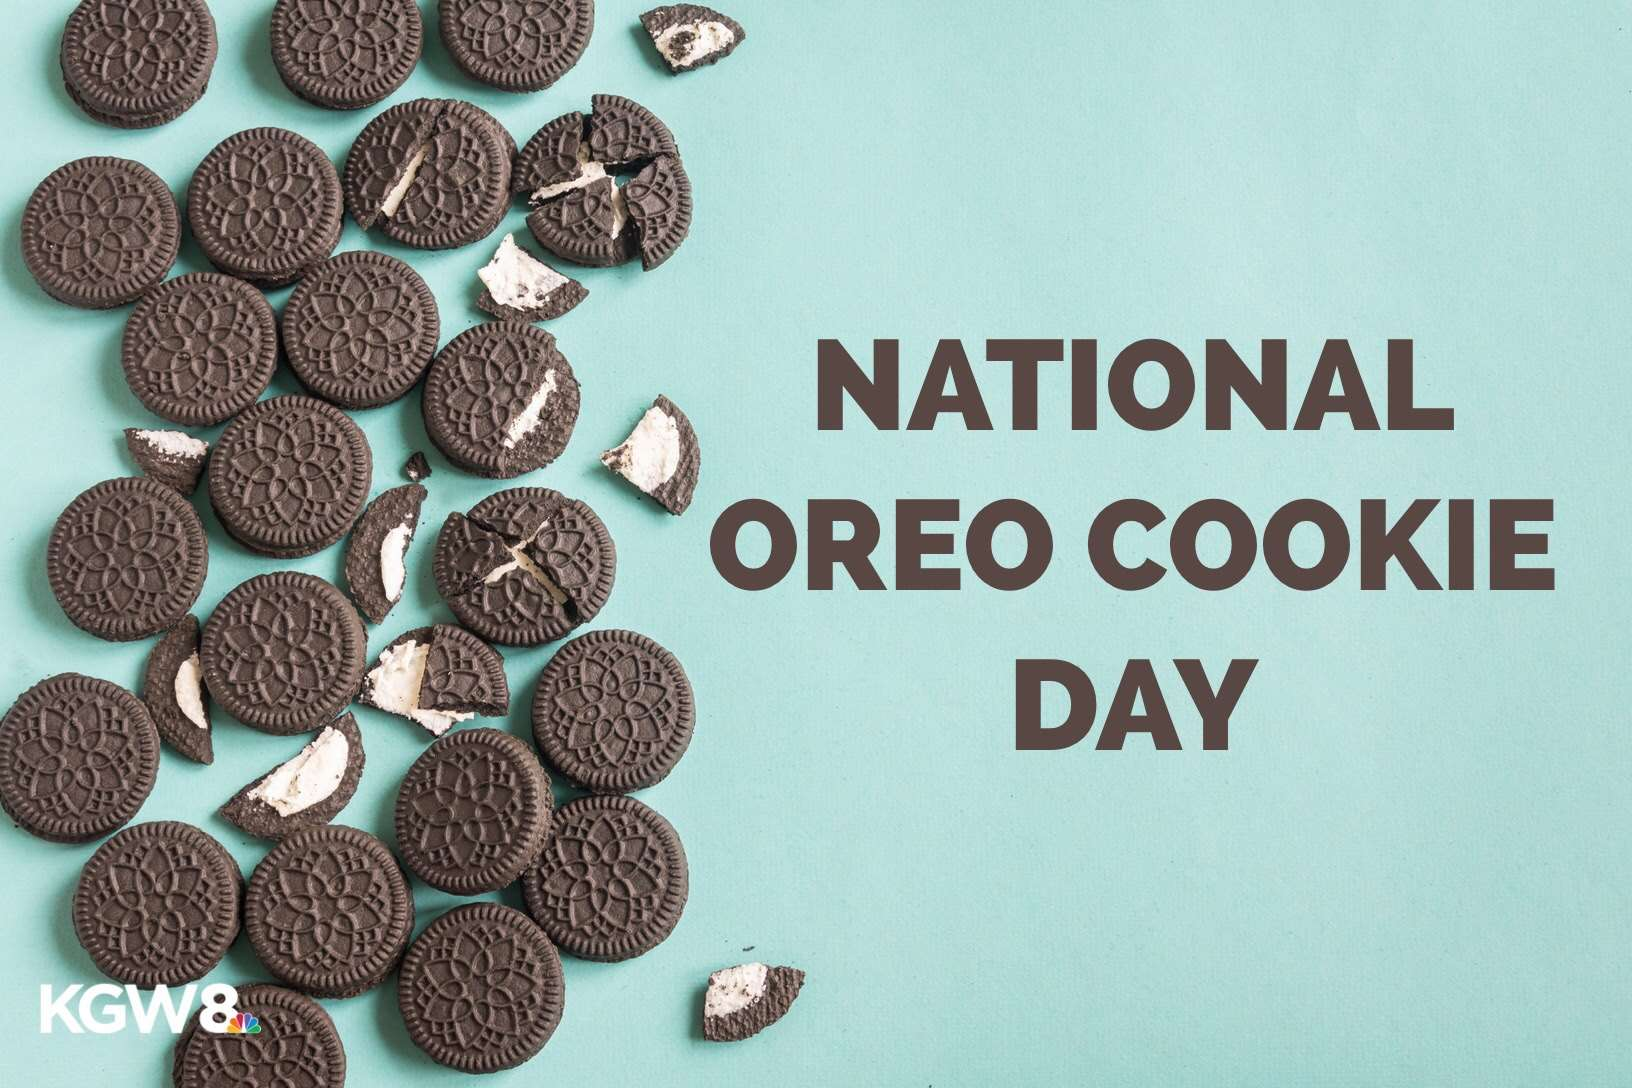 National Oreo Cookie Day Wishes Beautiful Image